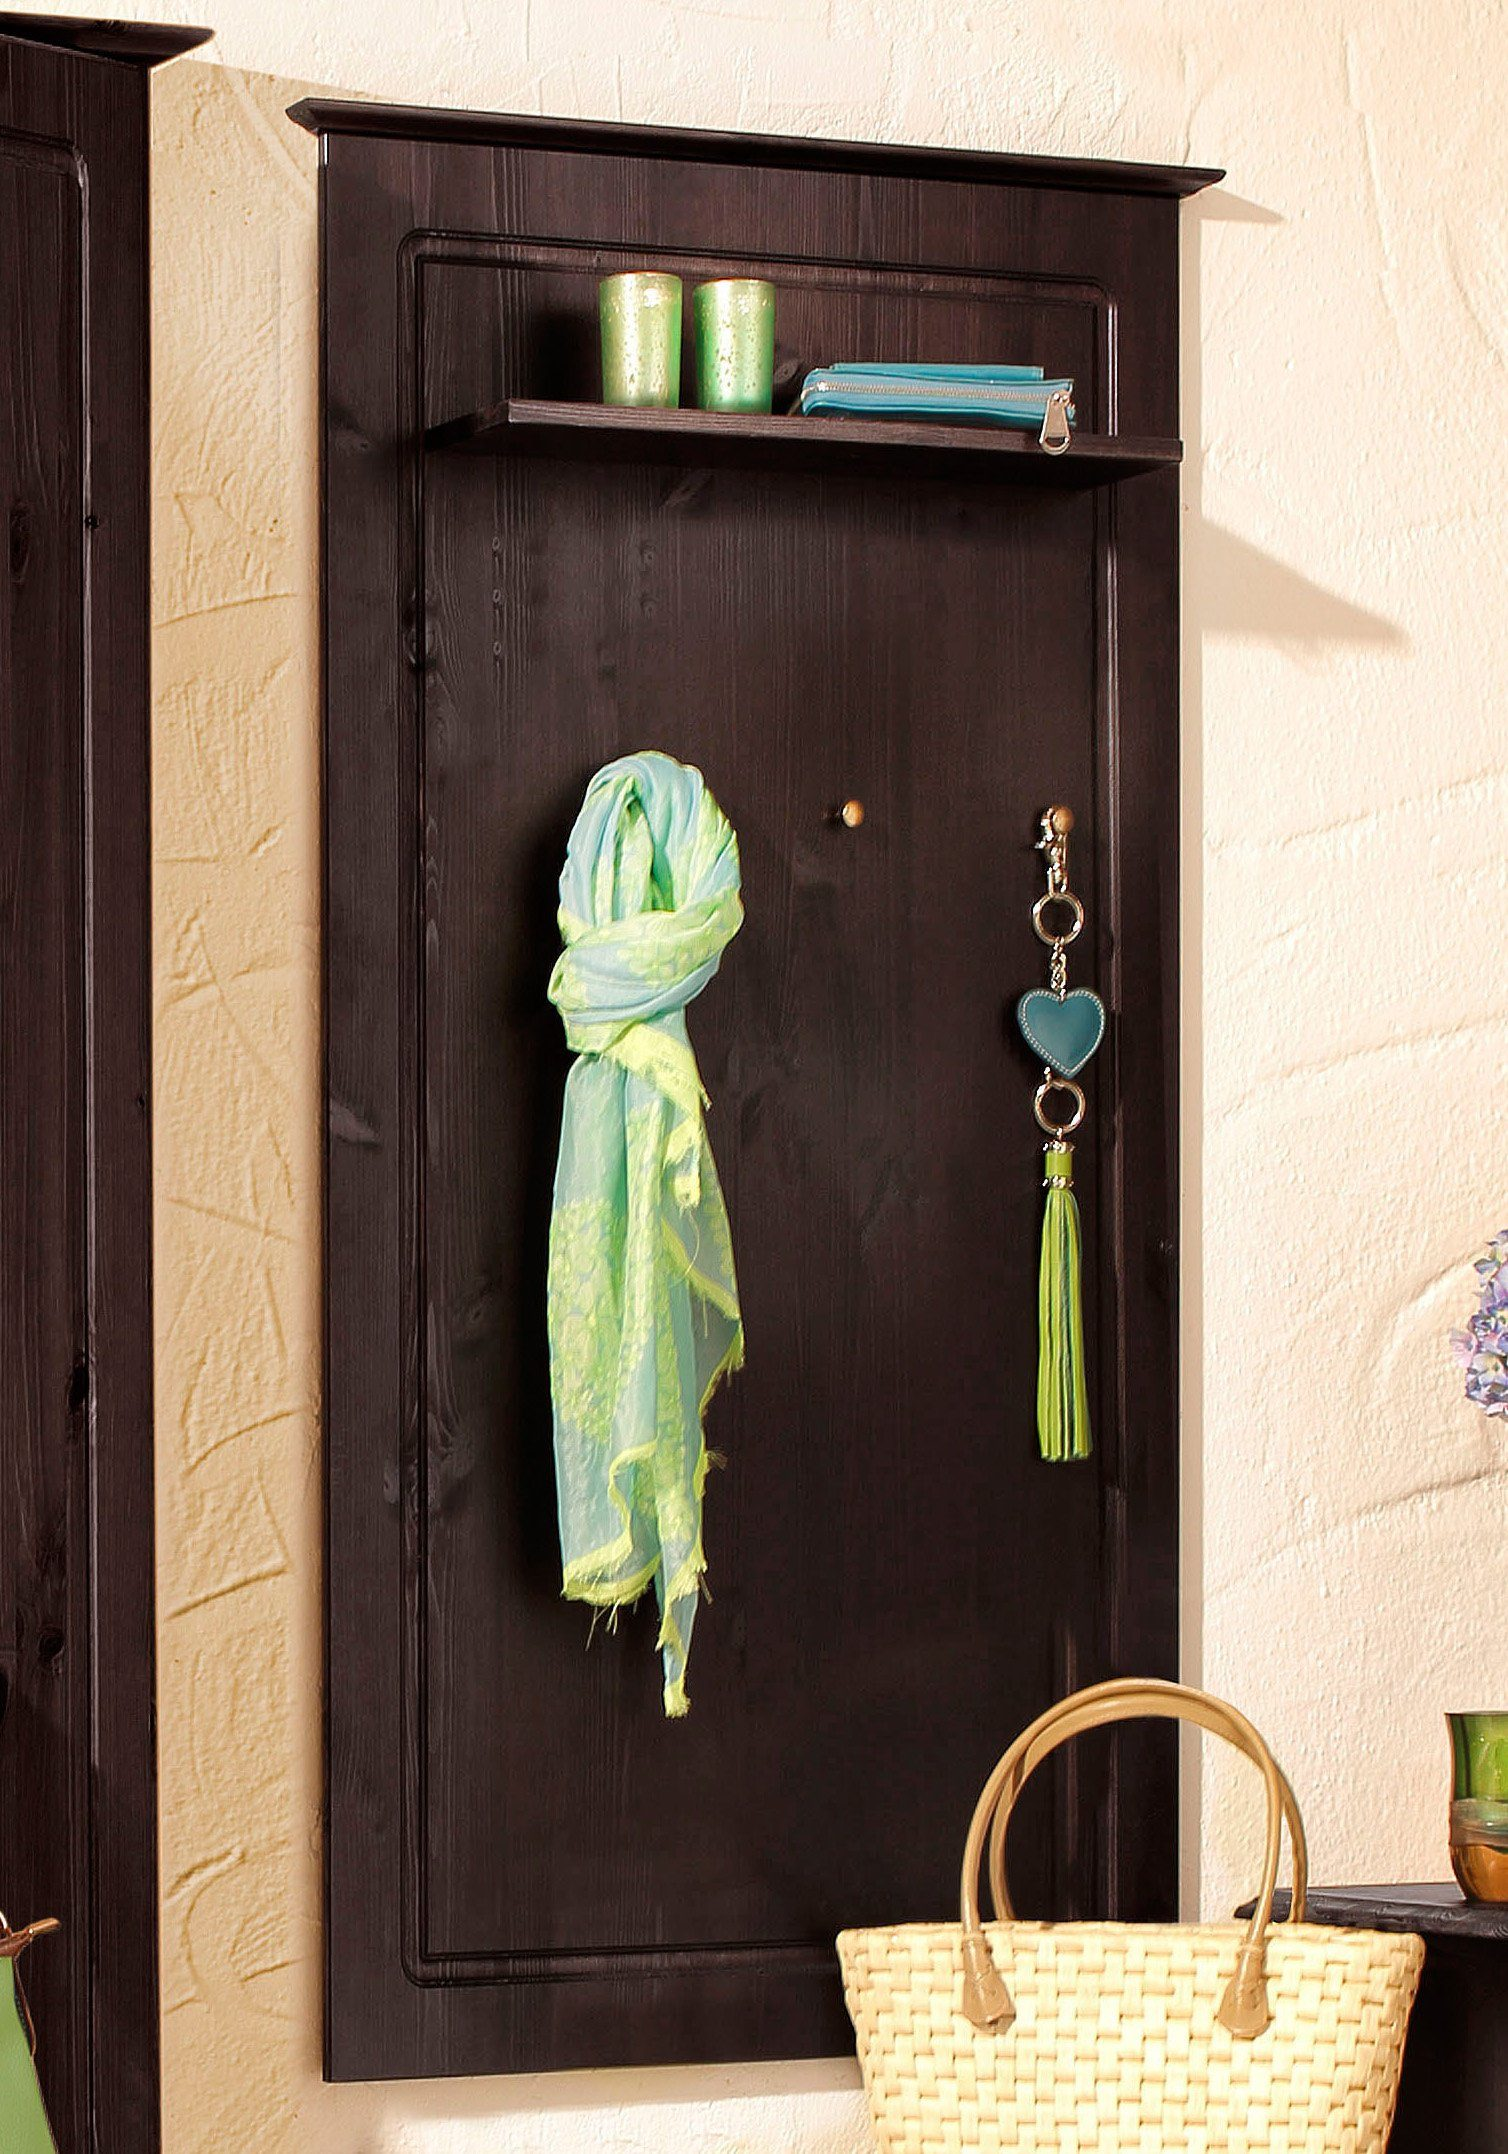 Home affaire Garderobe »Emden«